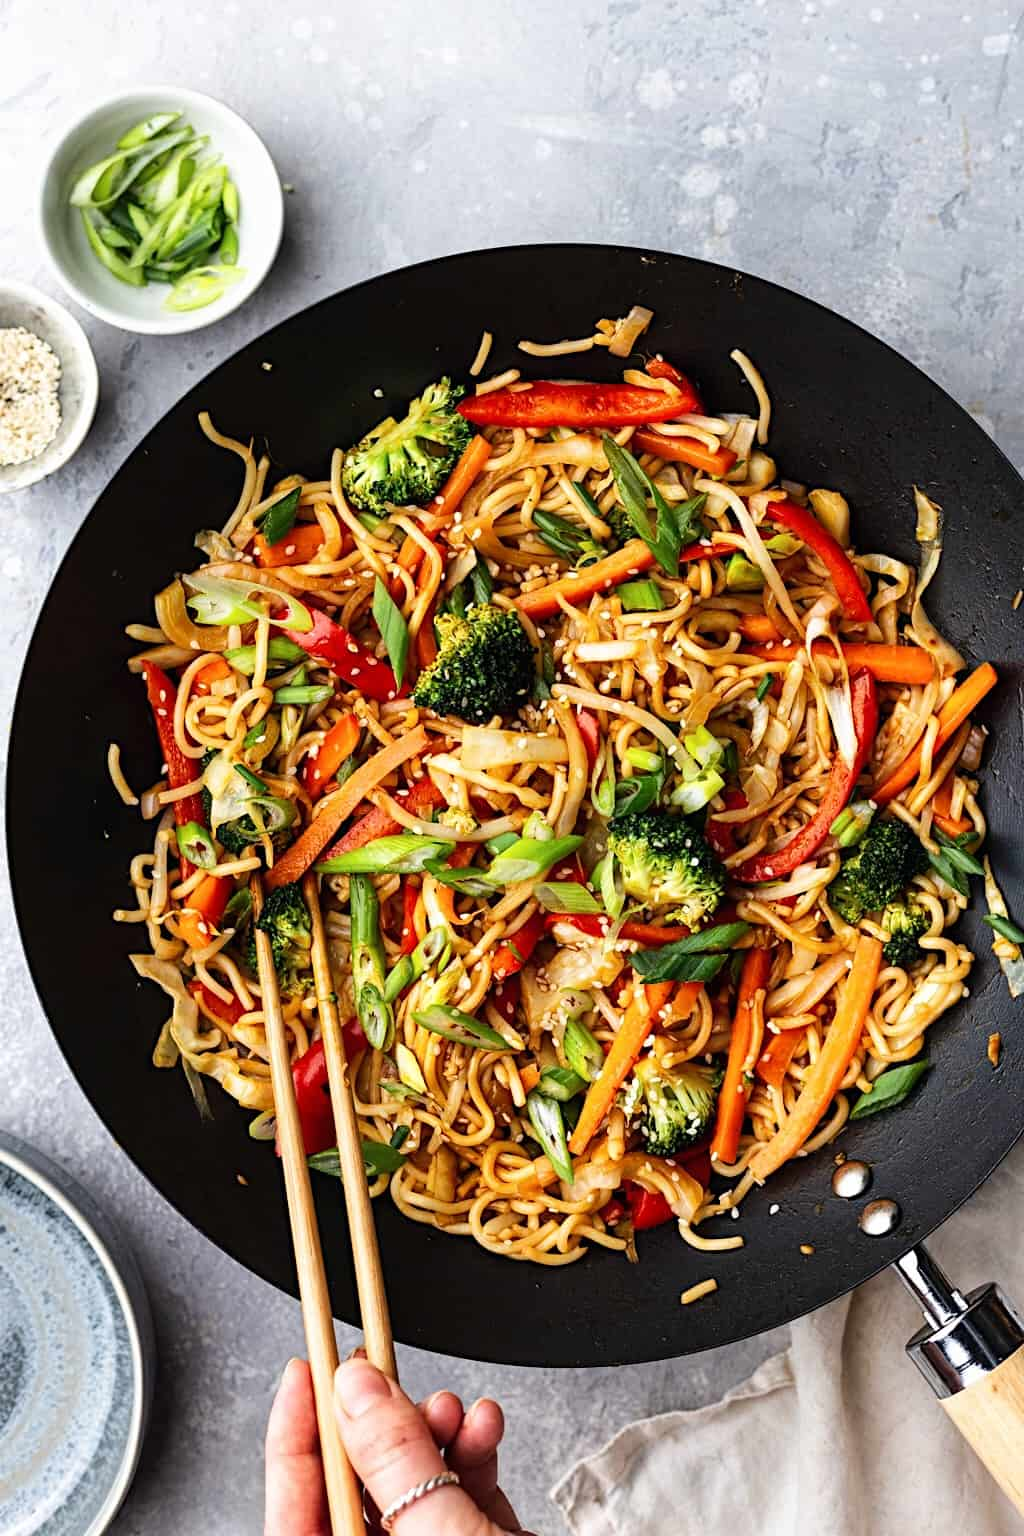 Vegan Vegetable Chow Mein #chinese #chowmein #vegan # recipe #noodles #vegetable